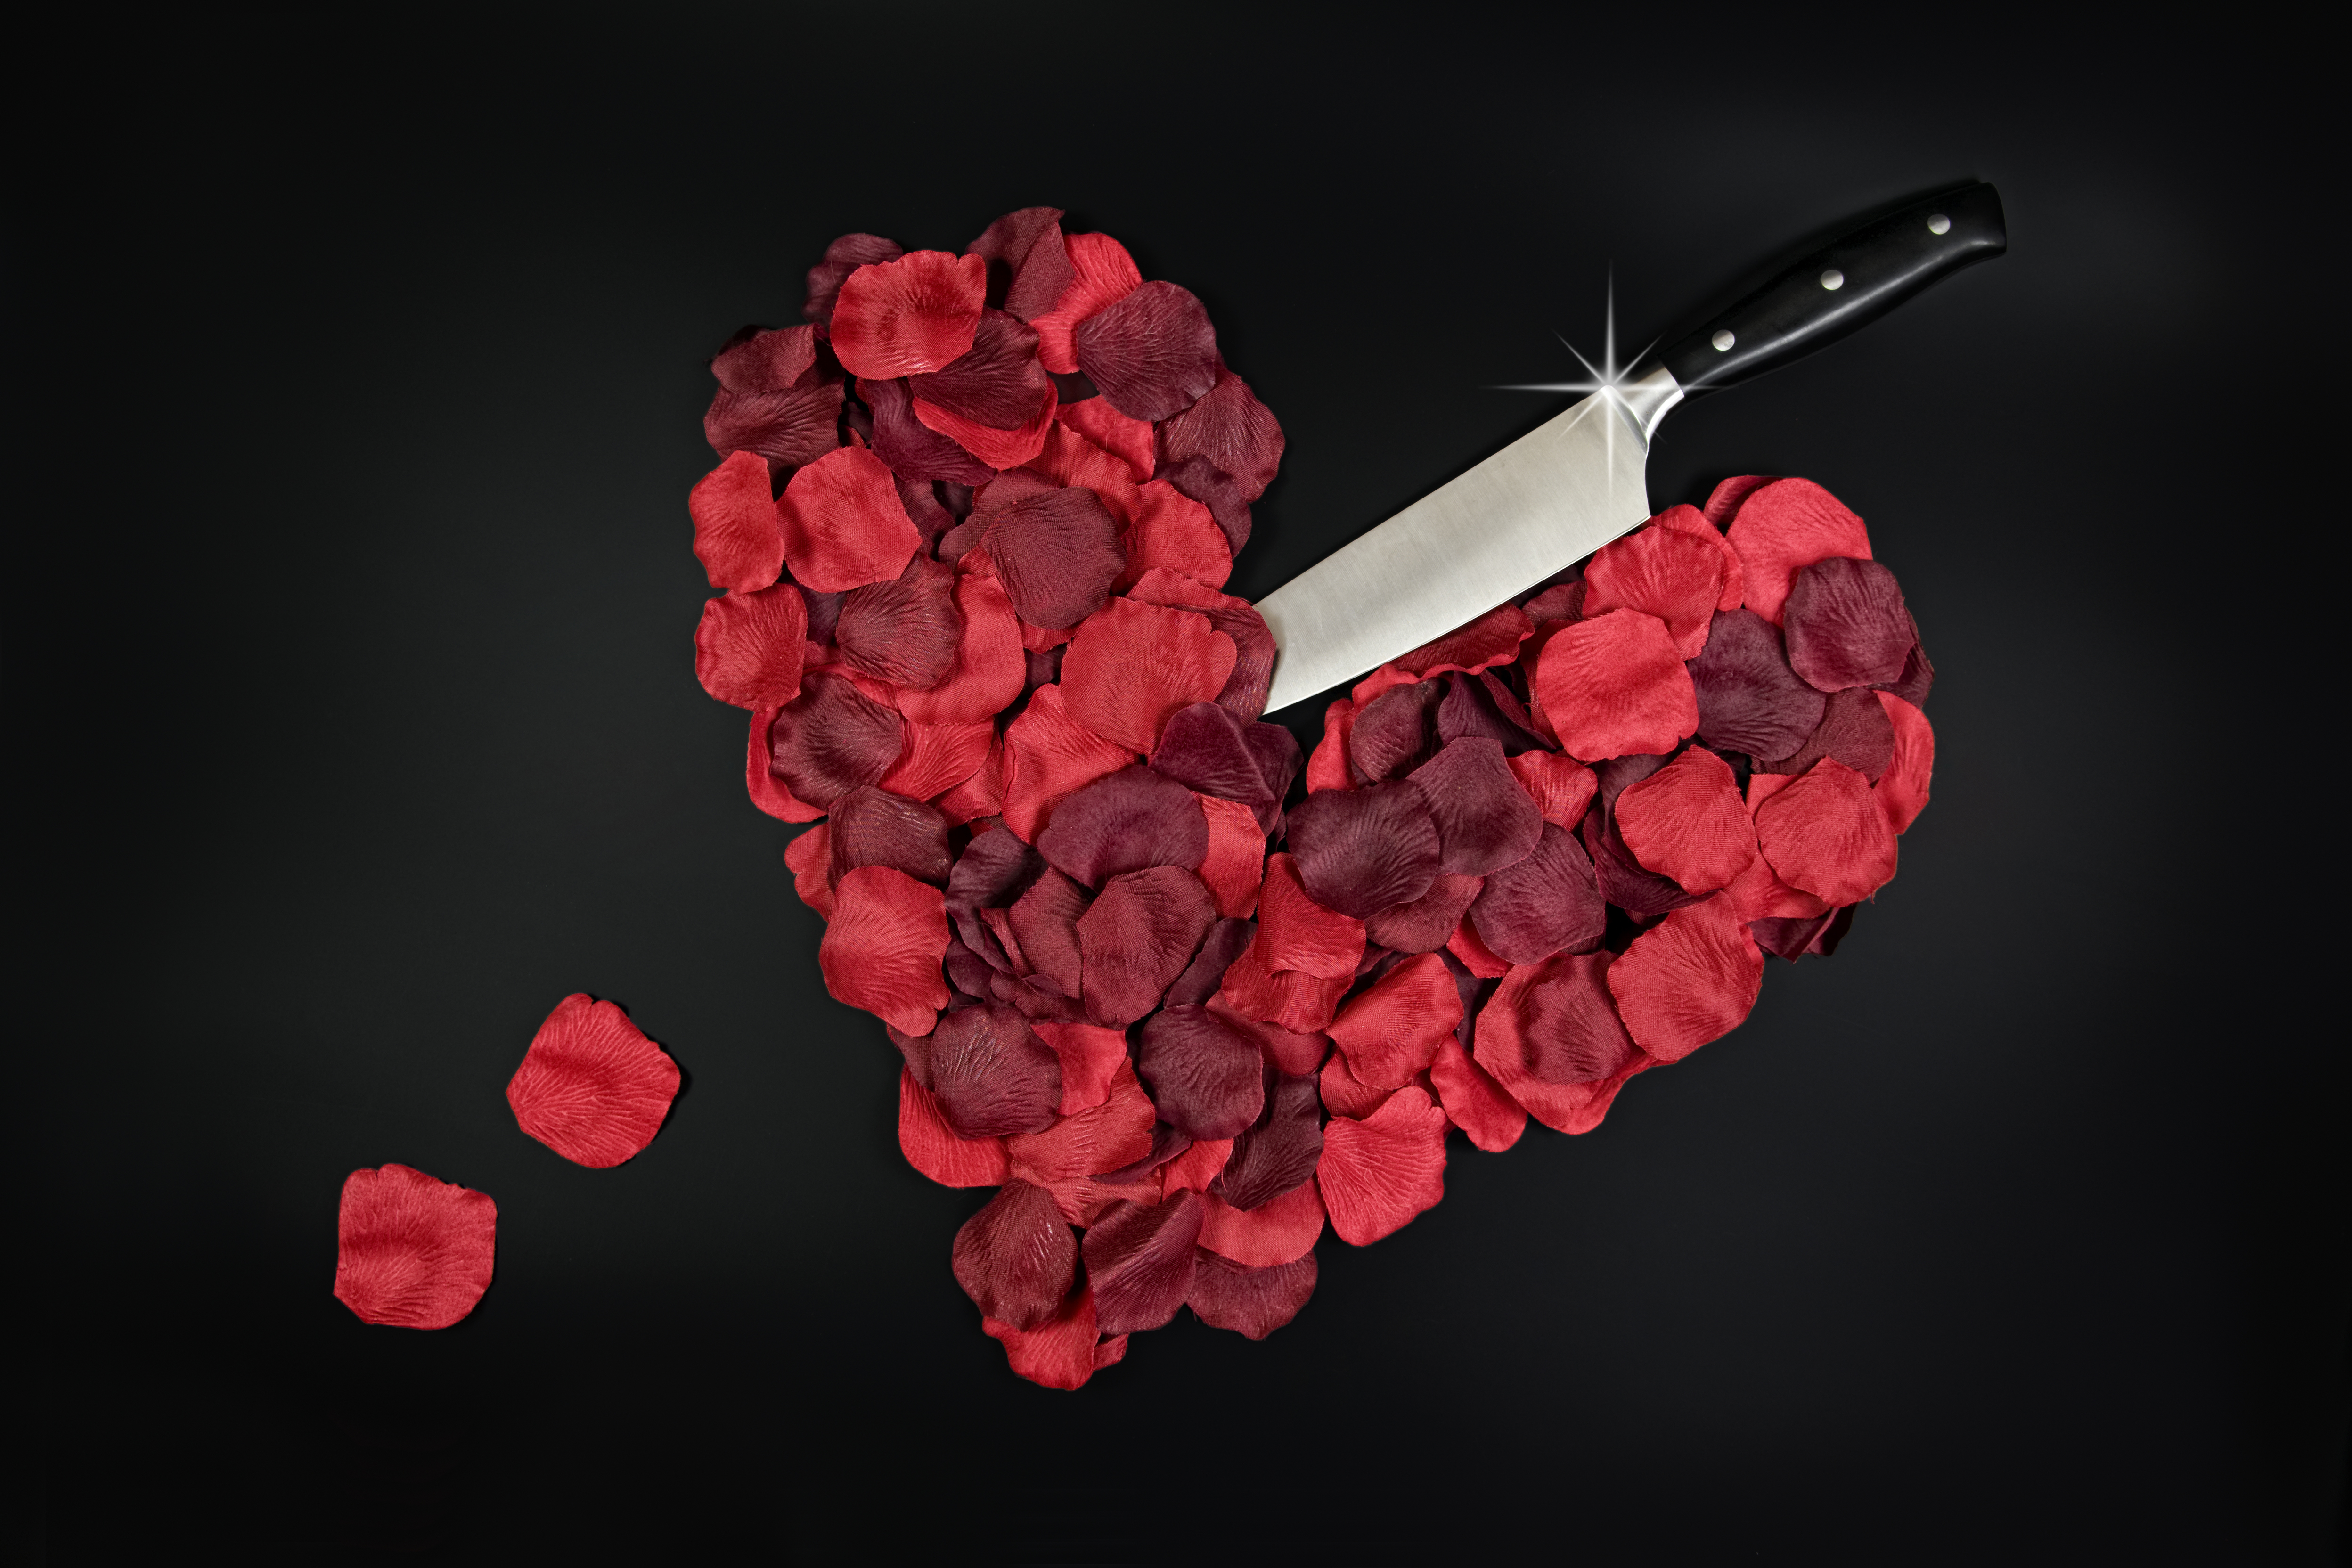 Red rose petals in heart shape with large knife